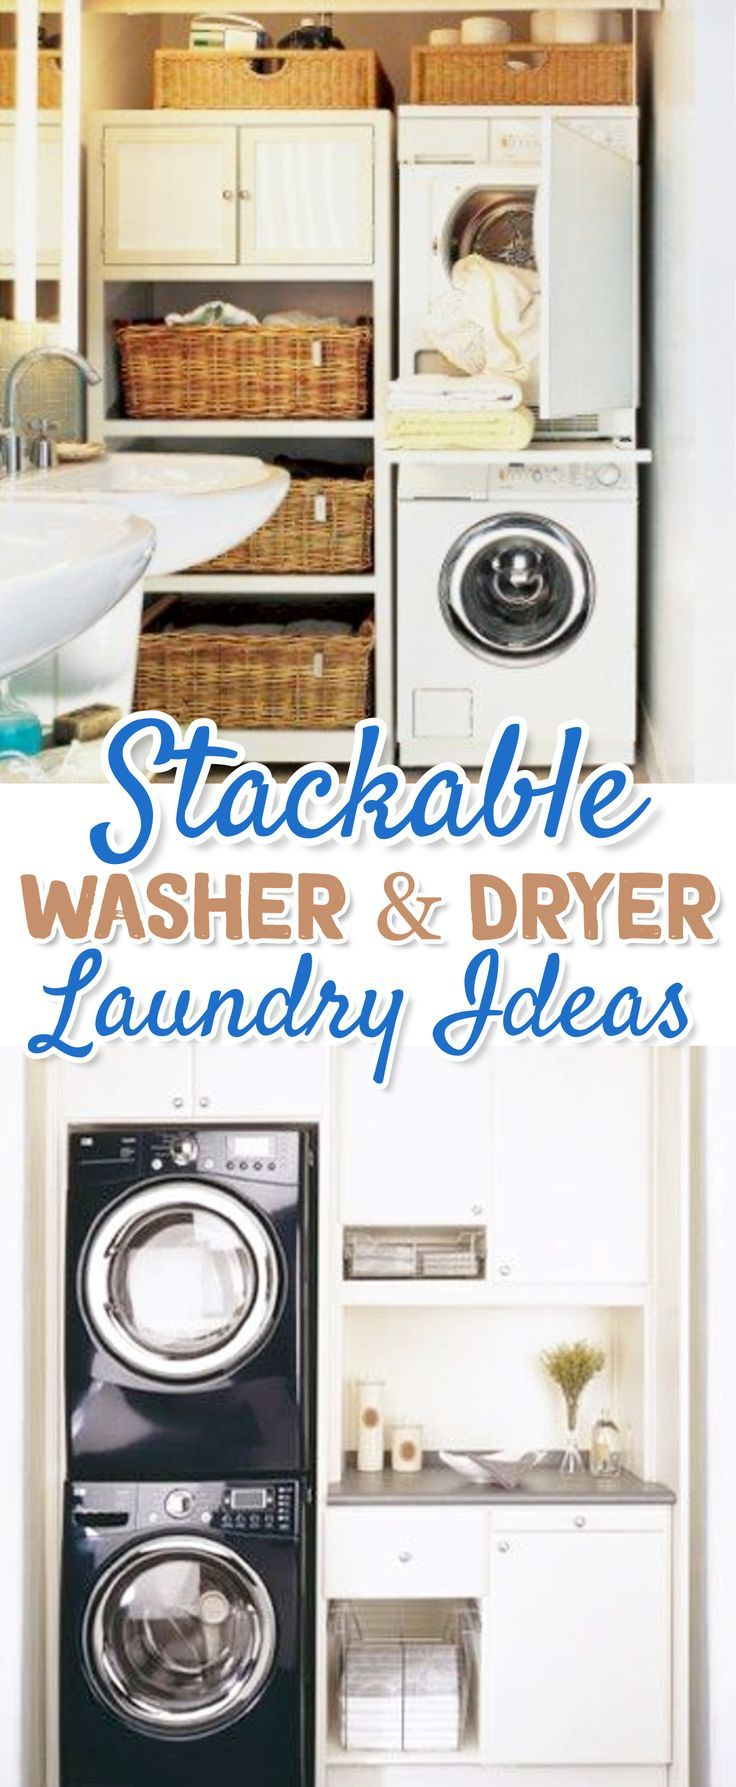 Stackable Washer And Dryer For Small Laundry Rooms Closets Other Tiny Areas Stackablewasheranddryer Laundryroomideas